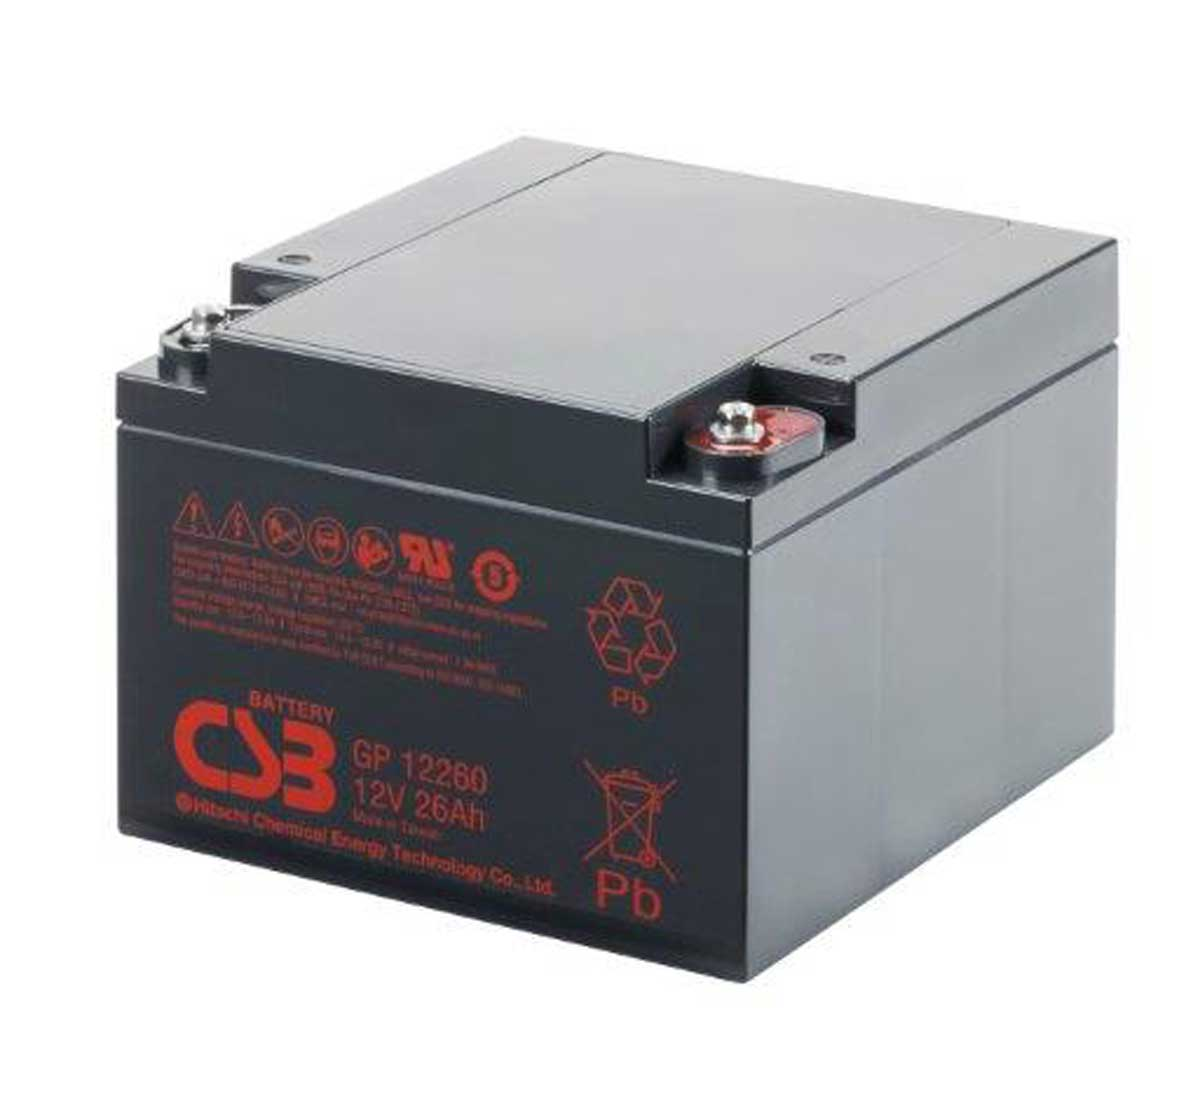 CSB GP12260 12V 26Ah Sealed Lead Acid Battery